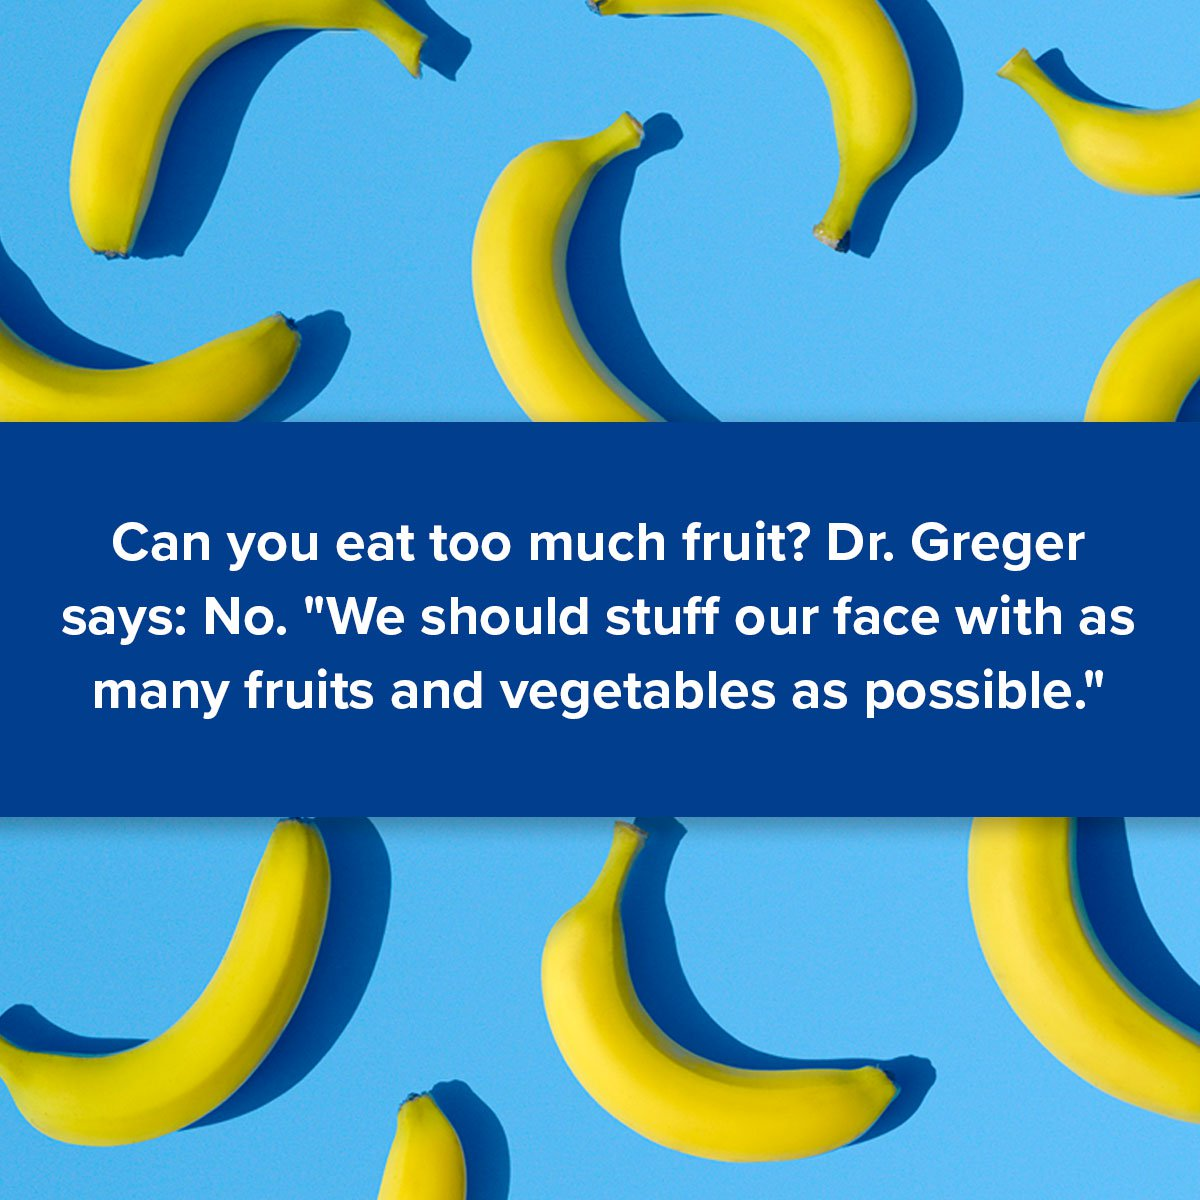 """Can you eat too much fruit? Dr. Greger says: No. """"We should stuff our face with as many fruits and vegetables as possible."""""""